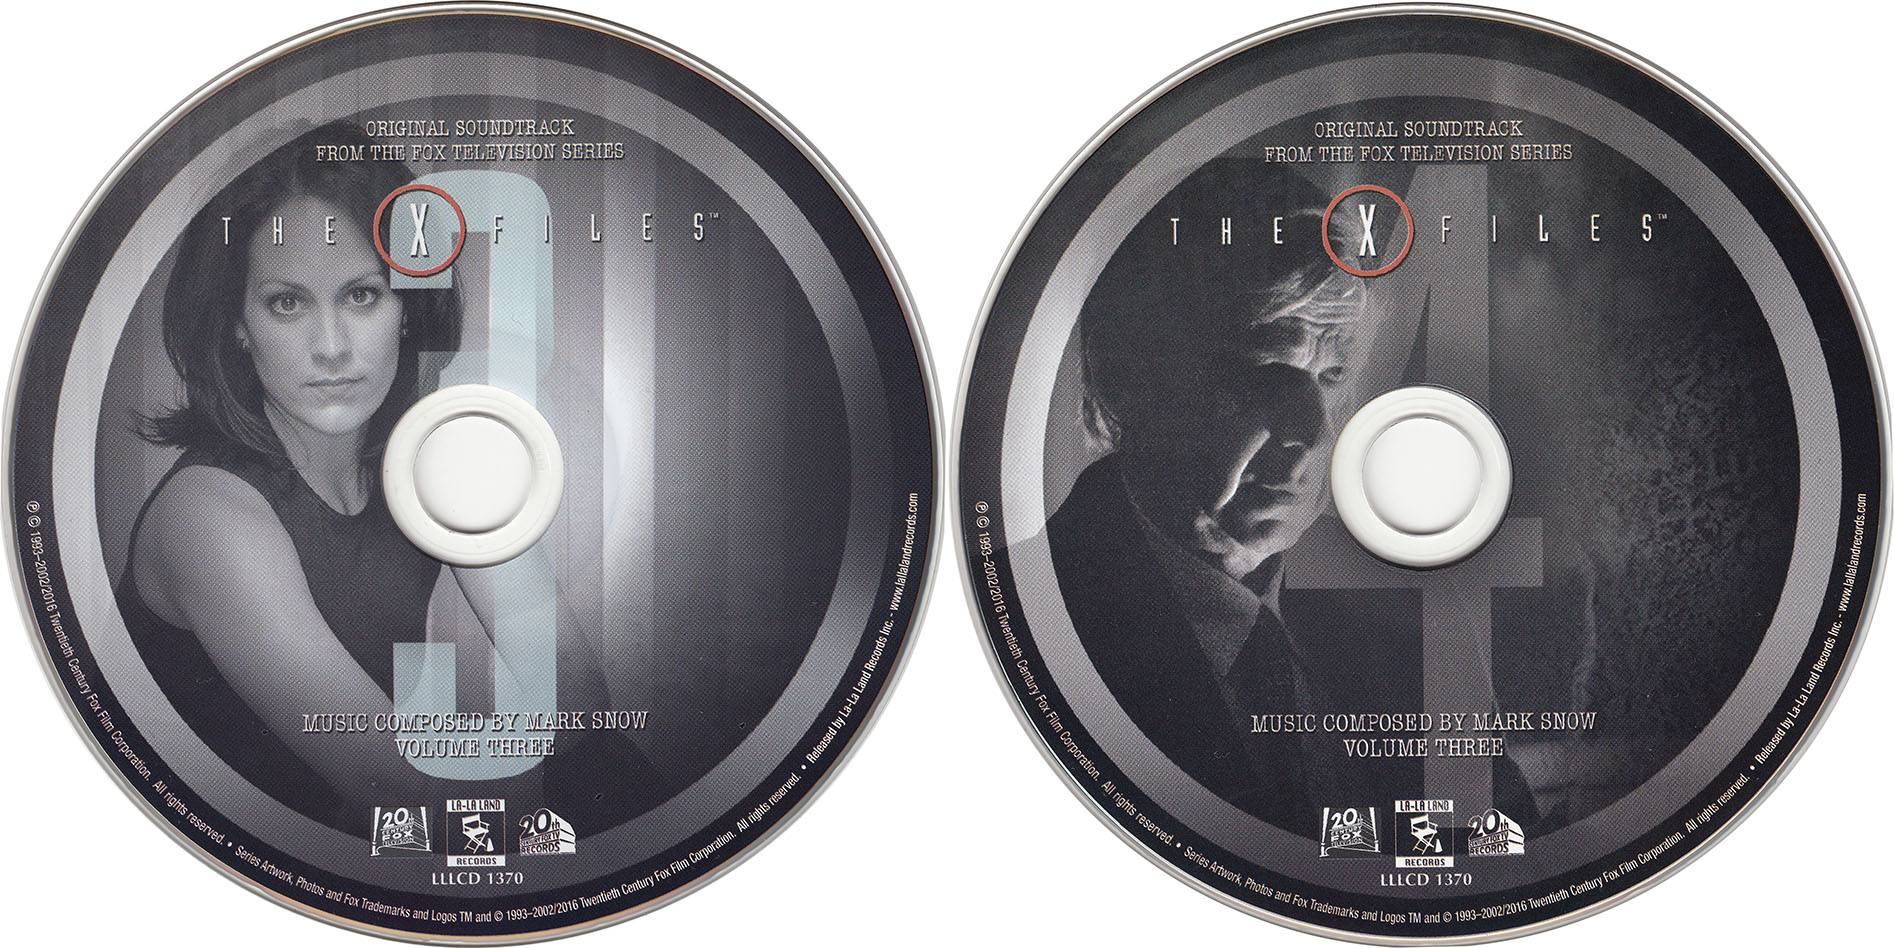 Mark Snow - The X-Files: Original Soundtrack From The Fox